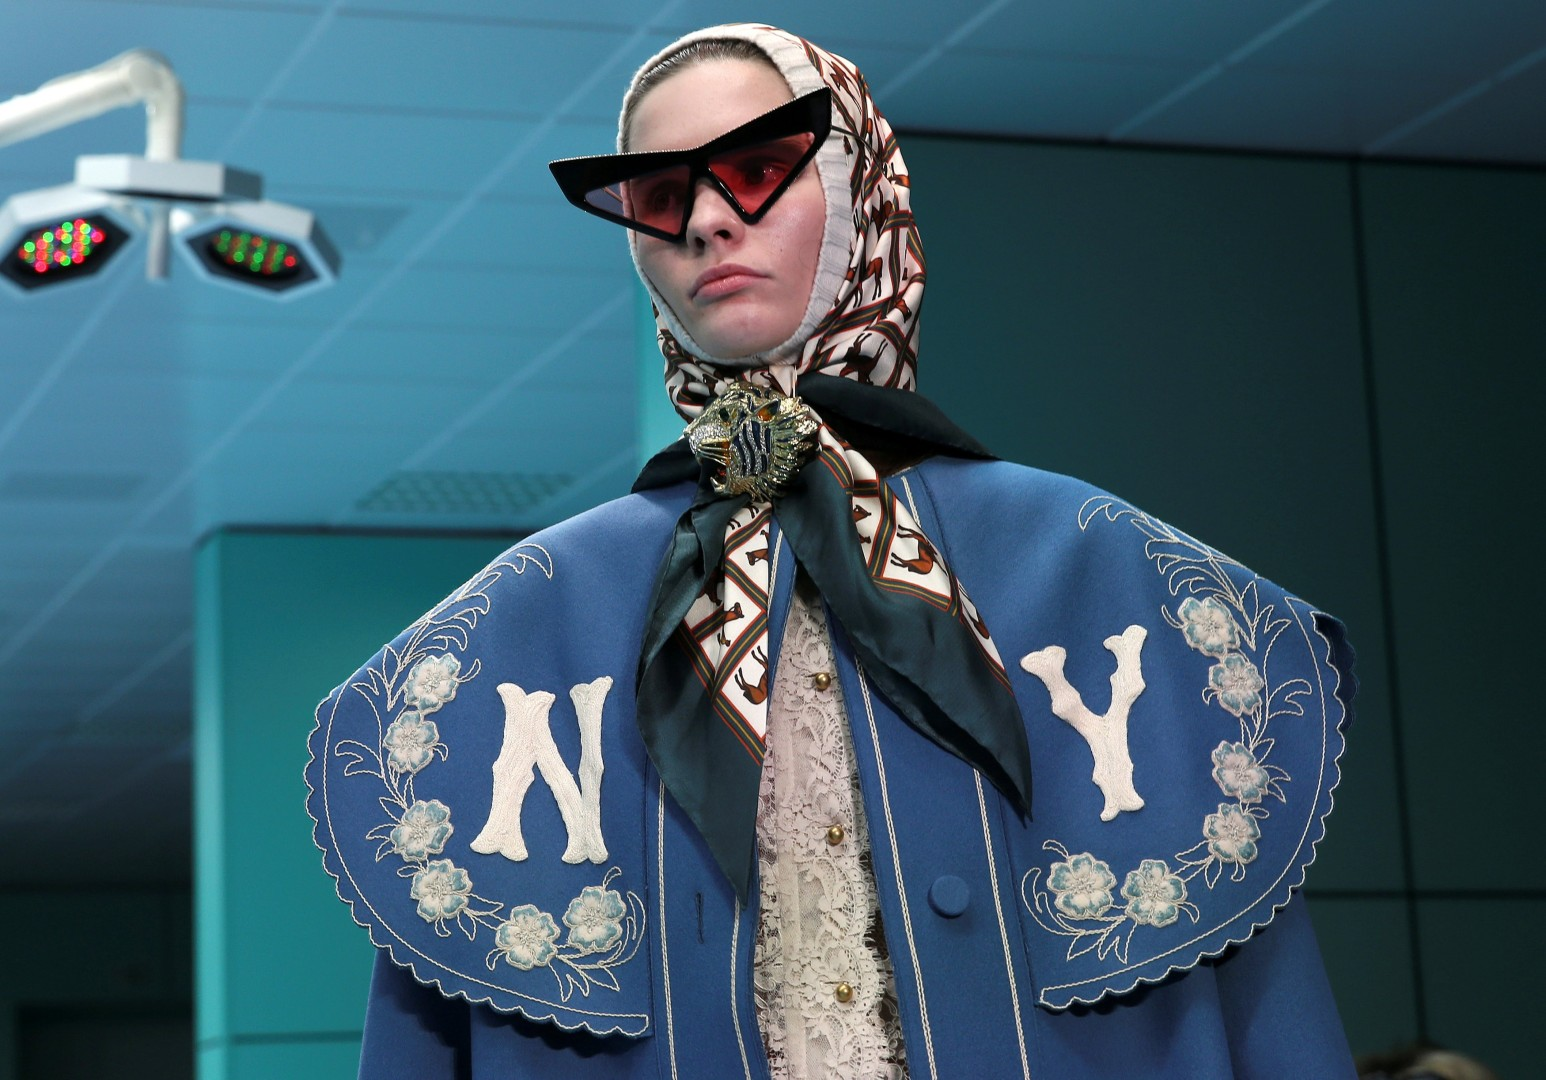 Gucci woos young luxury shoppers to double online sales | South